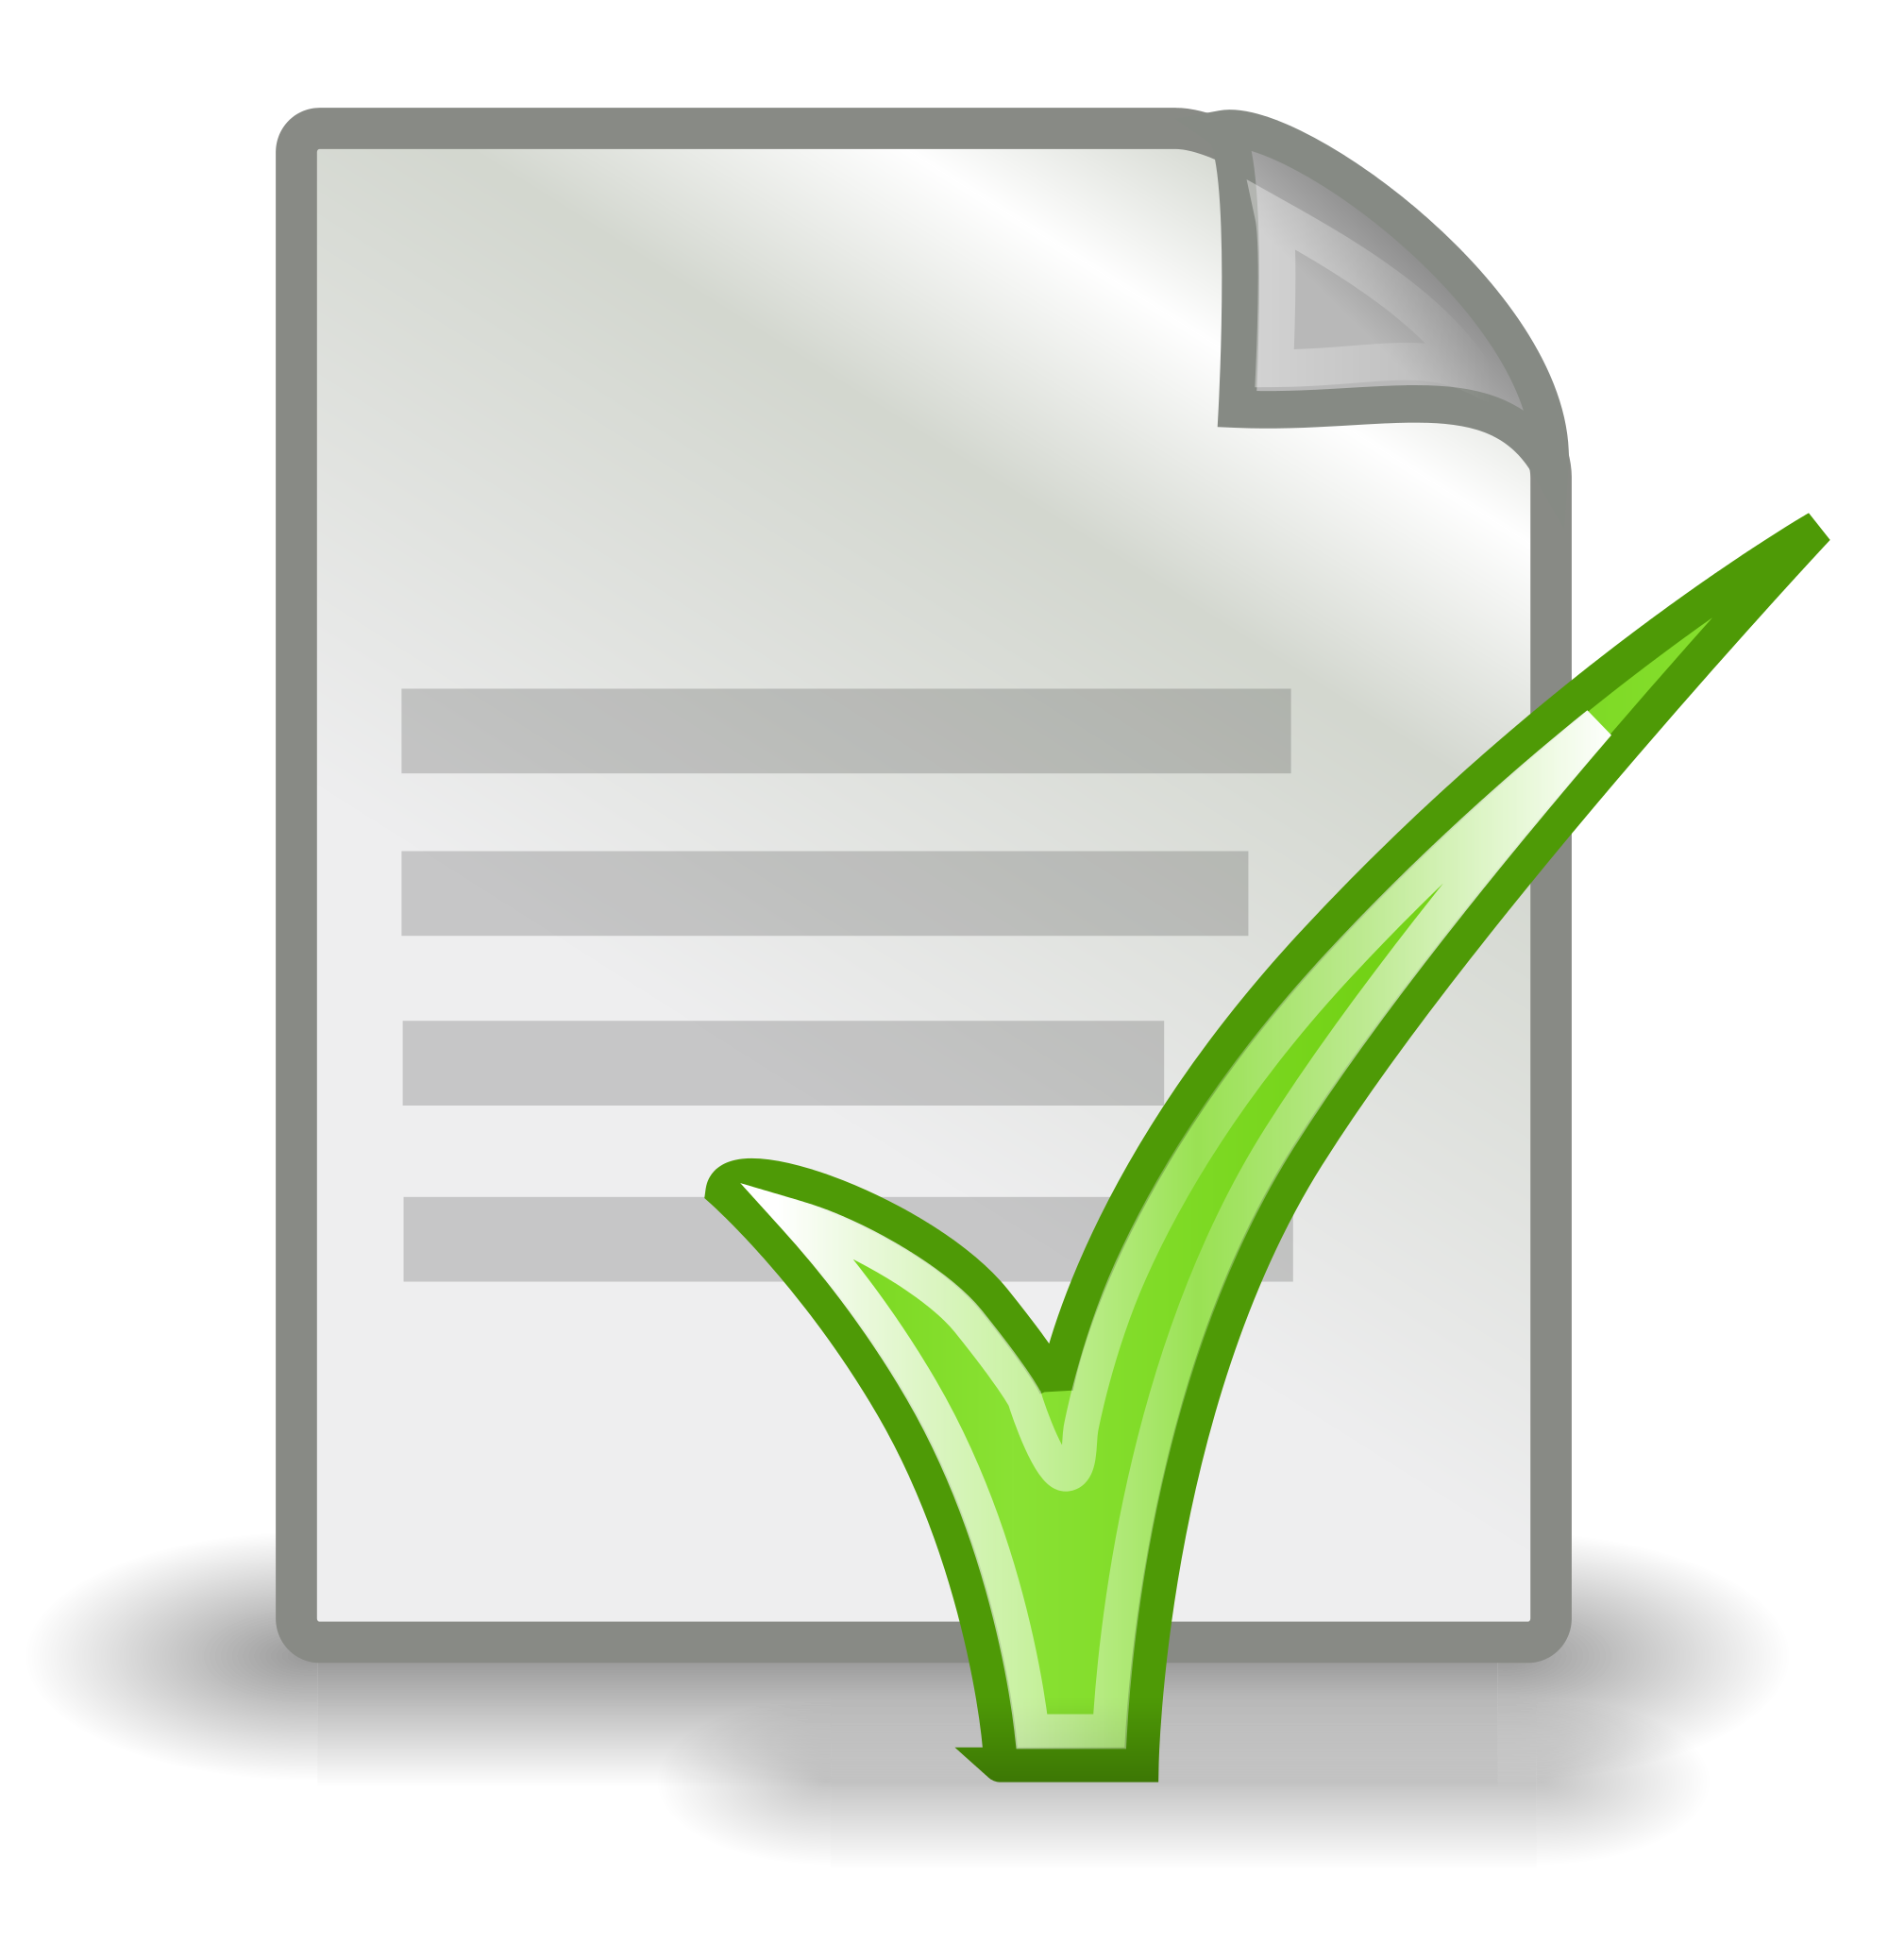 Document clipart policy document. File passed svg wikimedia